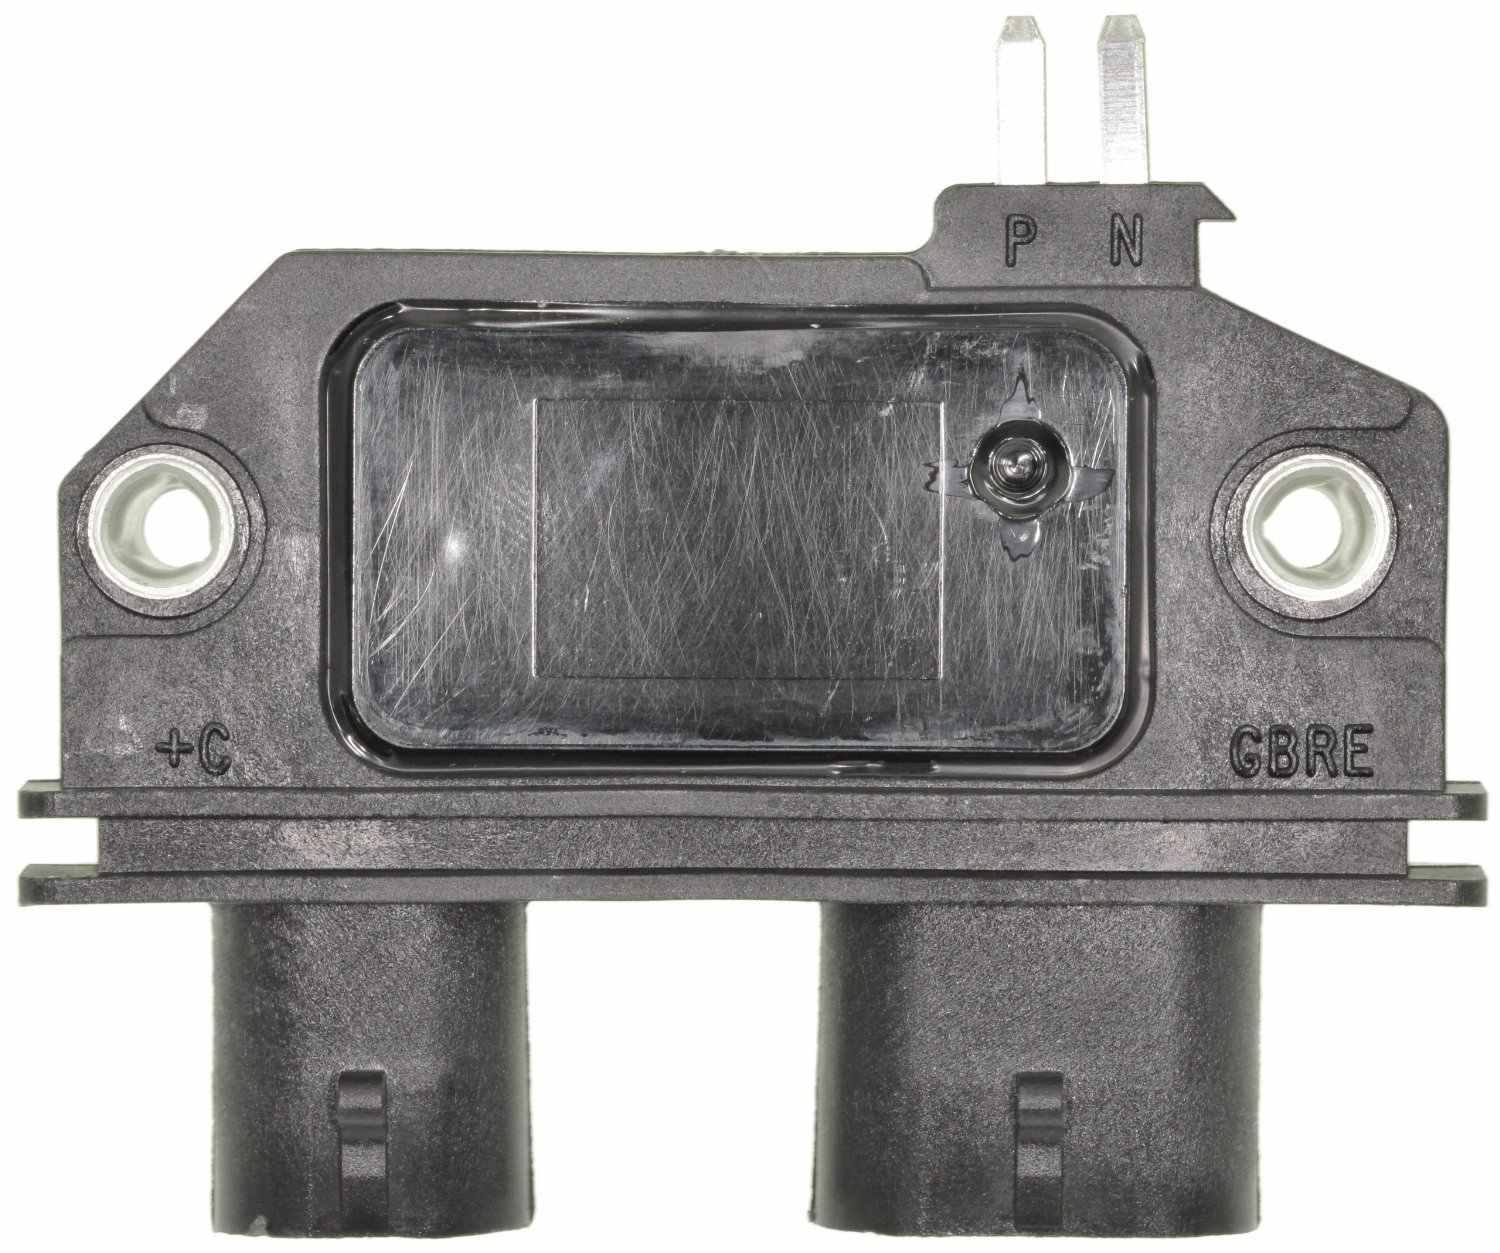 Replacing A Bad Electronic Ignition Module In A Gm Car Or